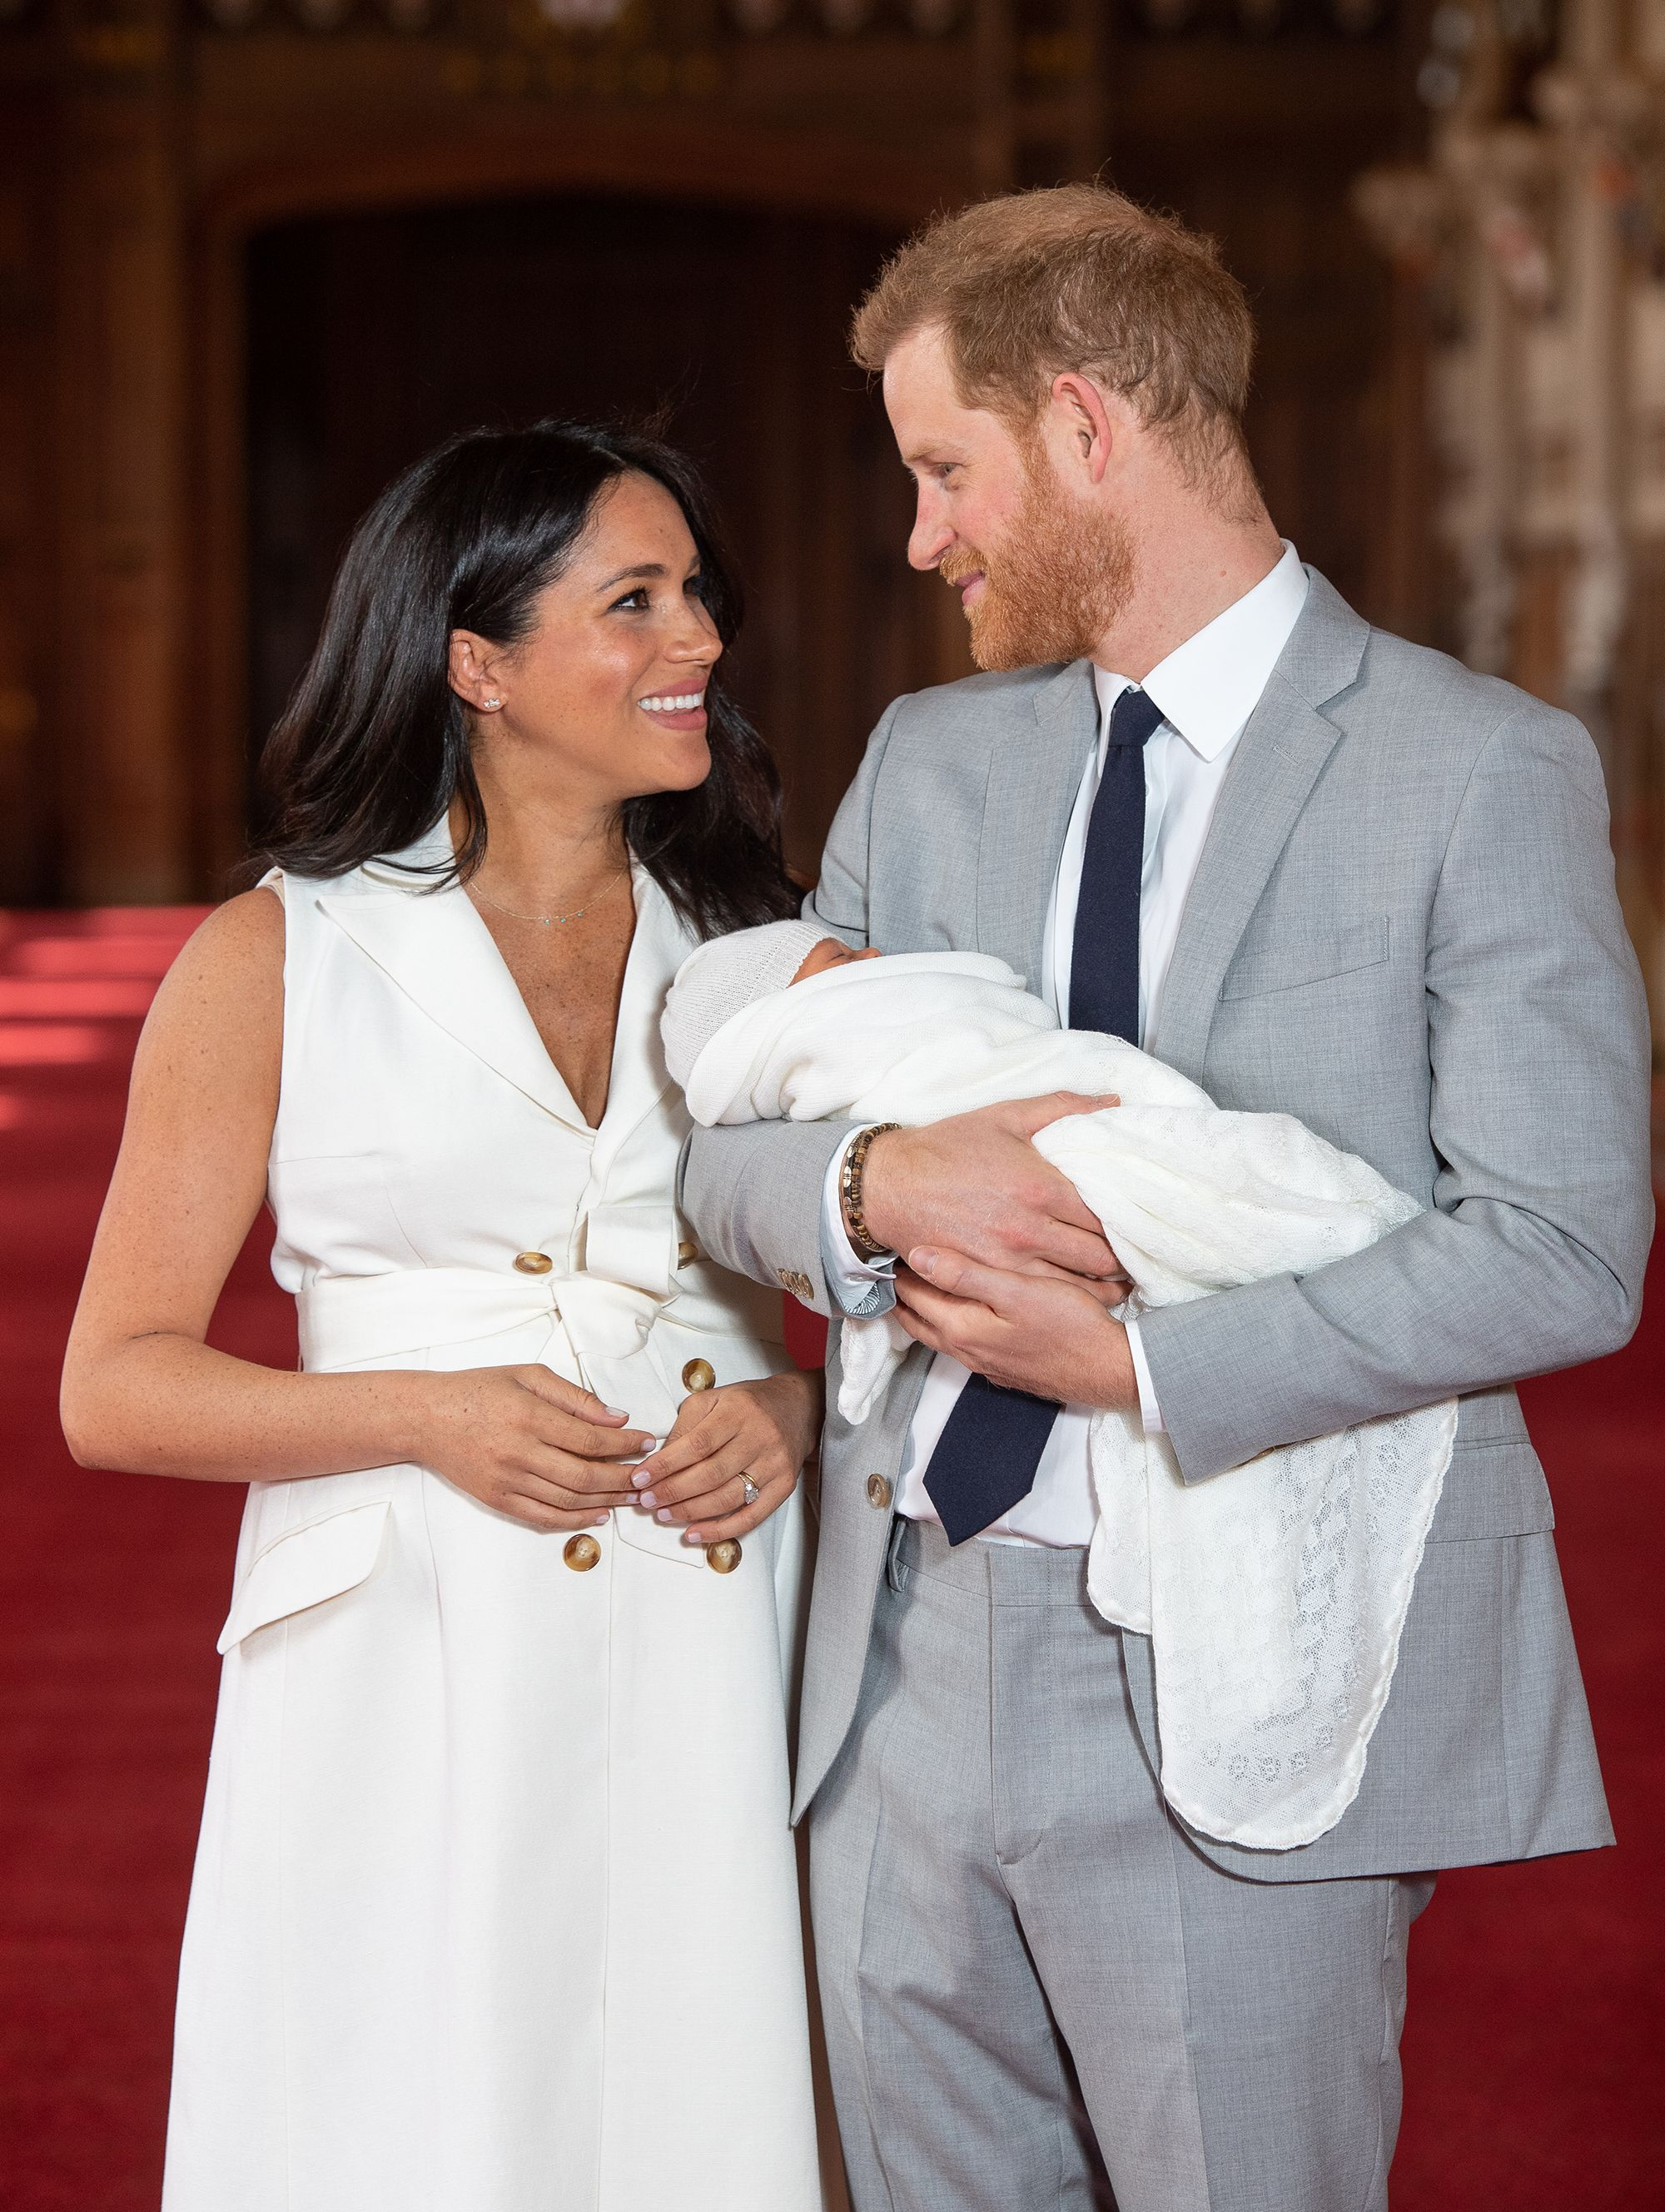 Meghan Markle's Friends Have Flown To London To Meet Baby Archie